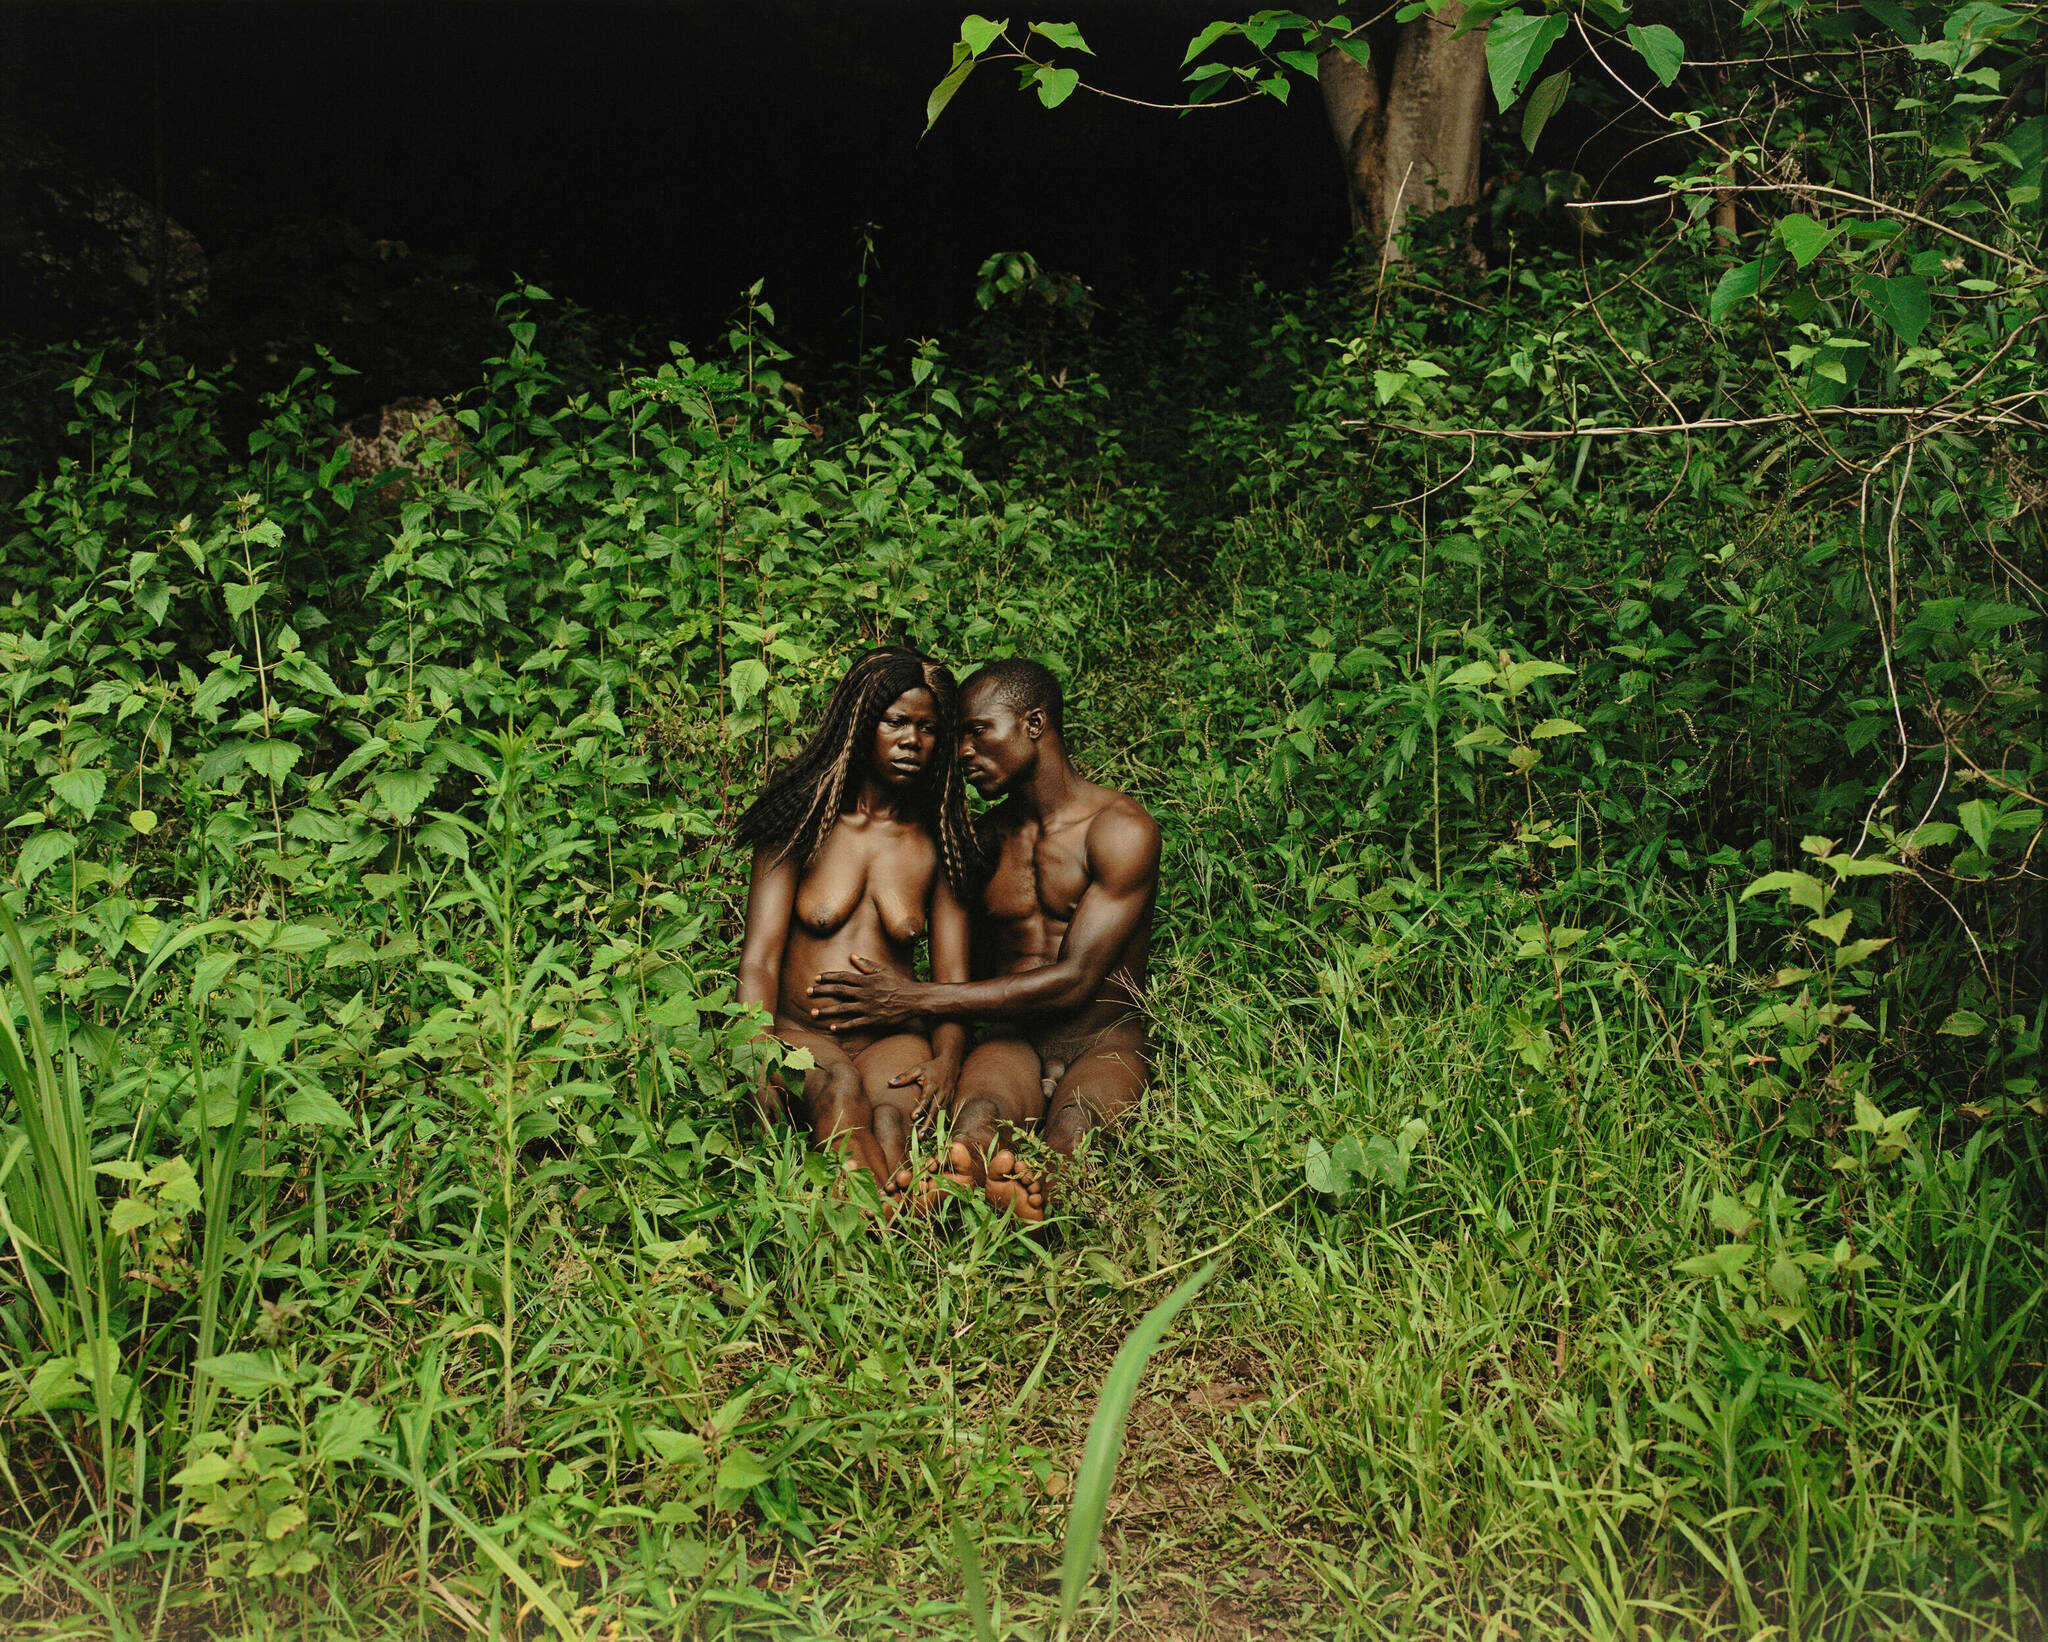 A Black couple sit in the nude in a lush green garden; the man's hand reaches across the woman's belly